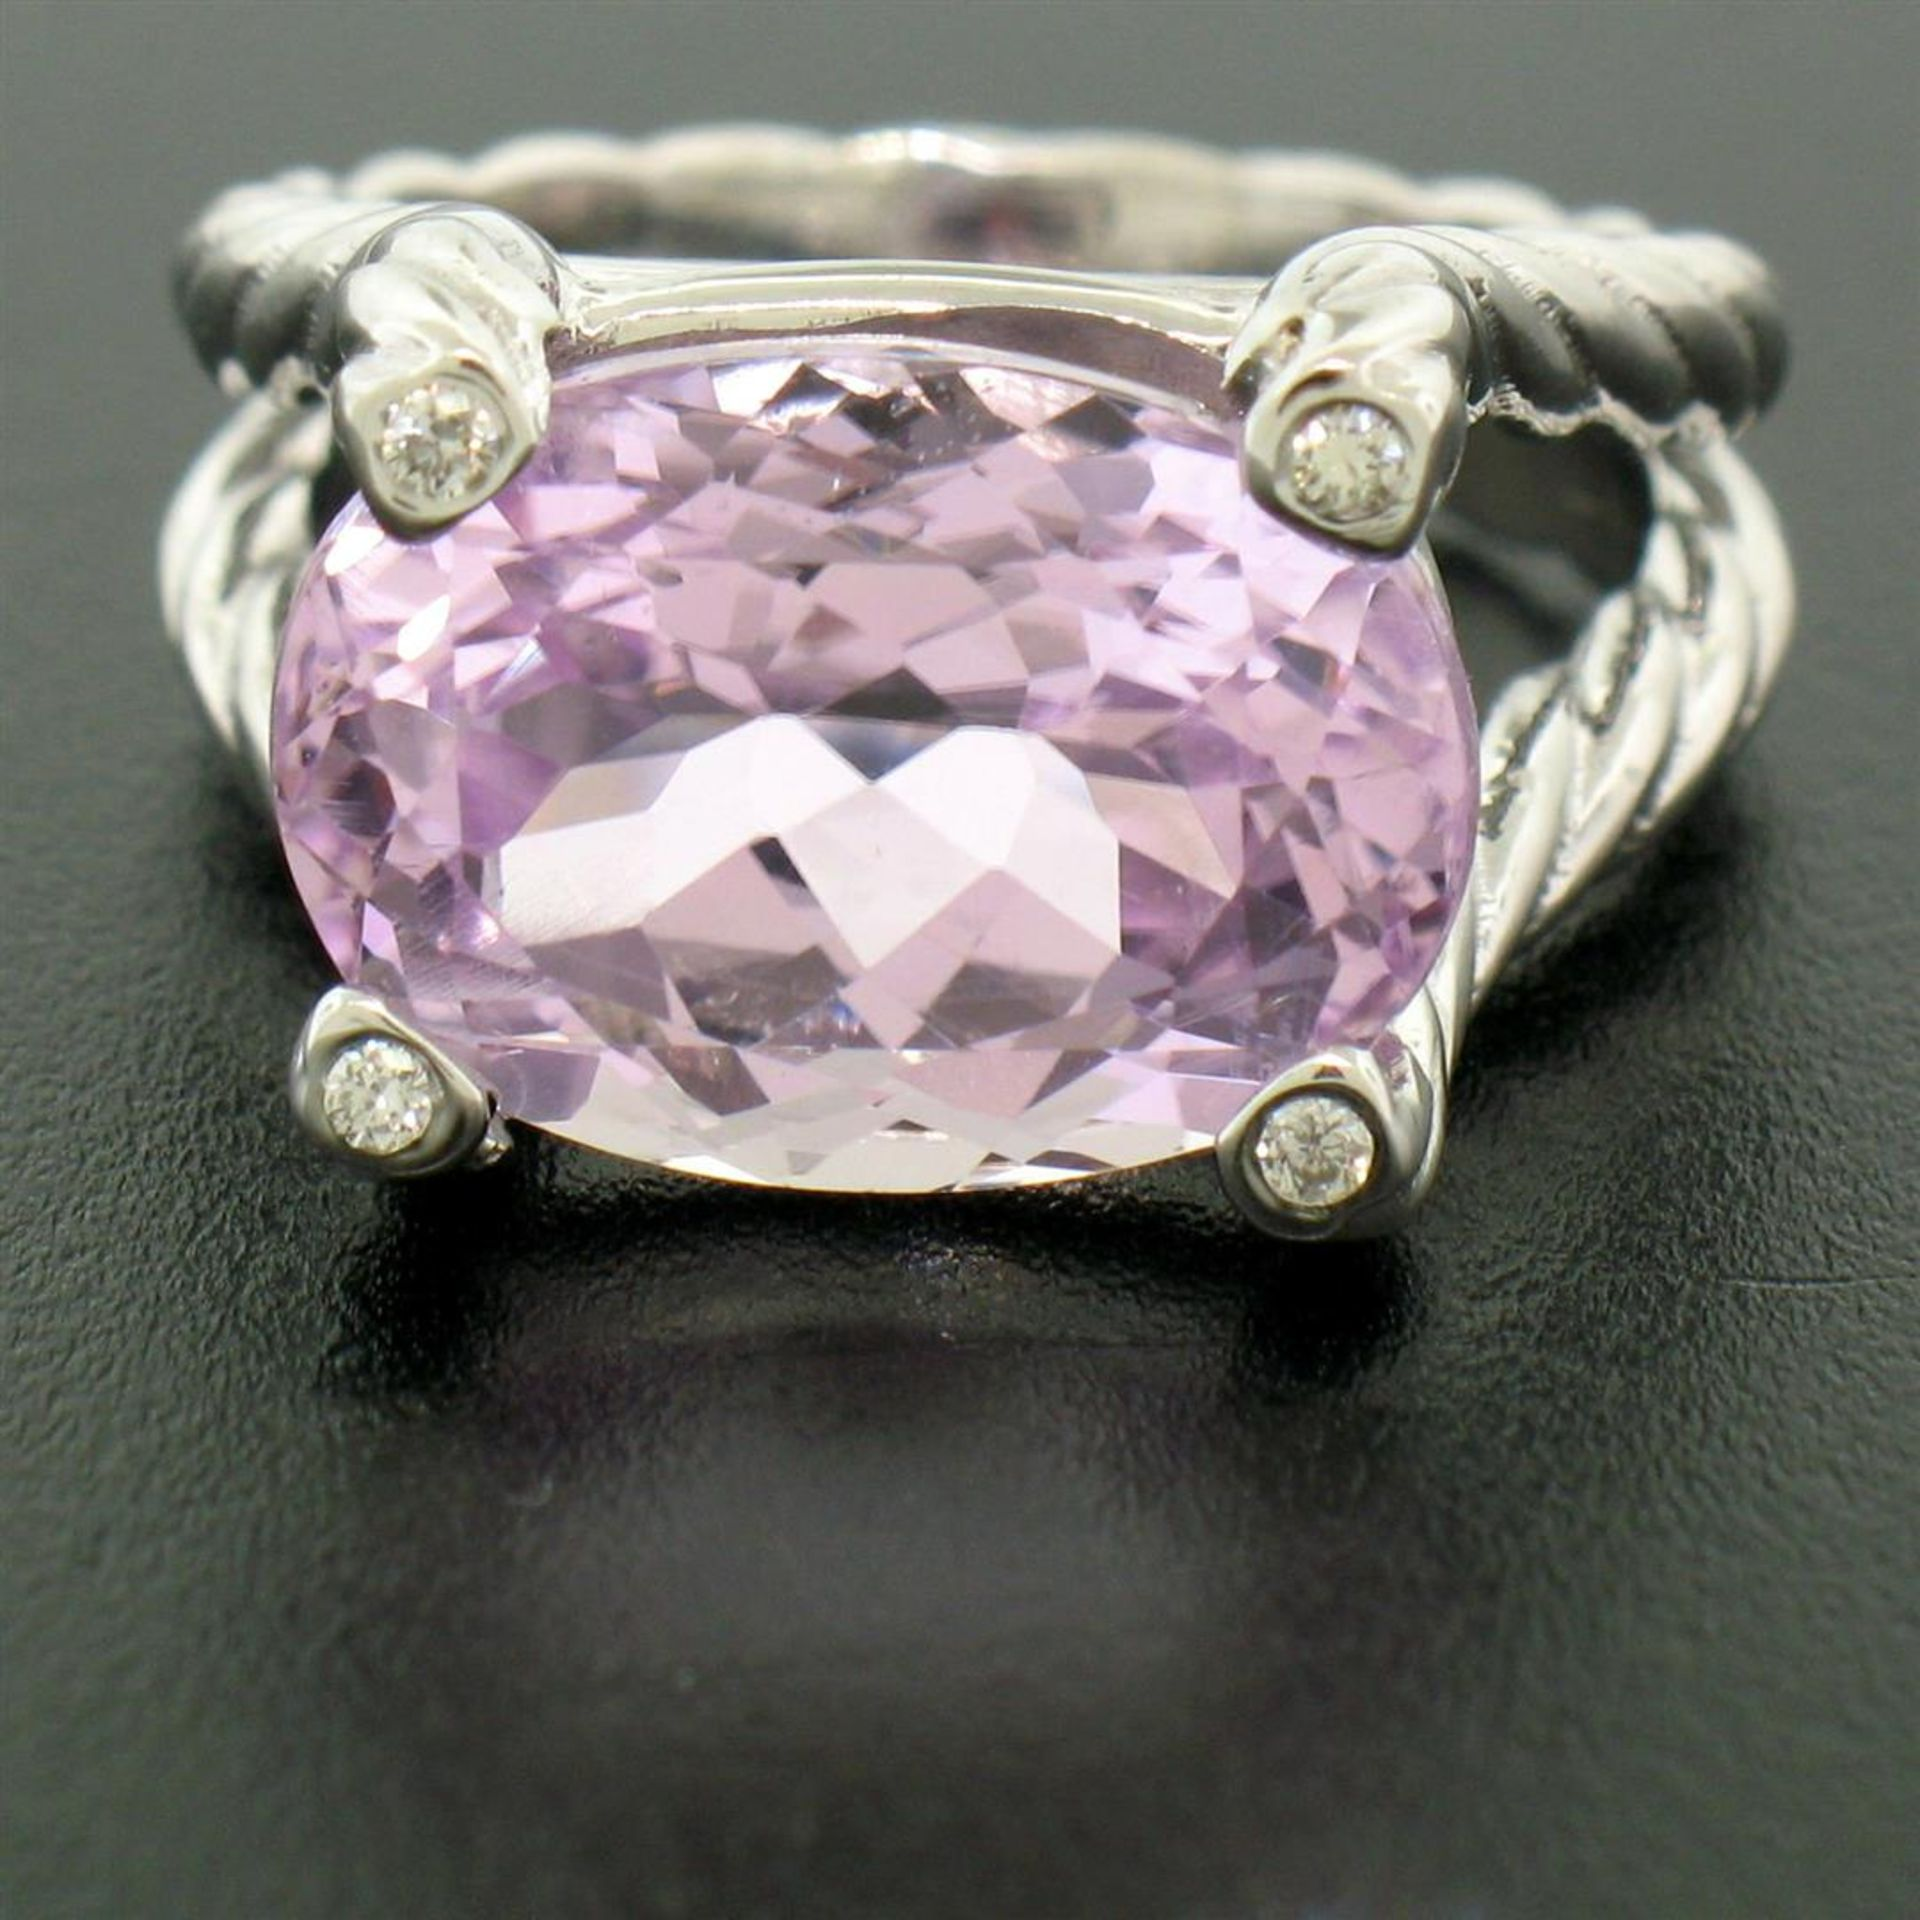 14k White Gold Twisted Cable 8.5 ctw Oval Kunzite Solitaire Ring 4 Diamond Accen - Image 6 of 8